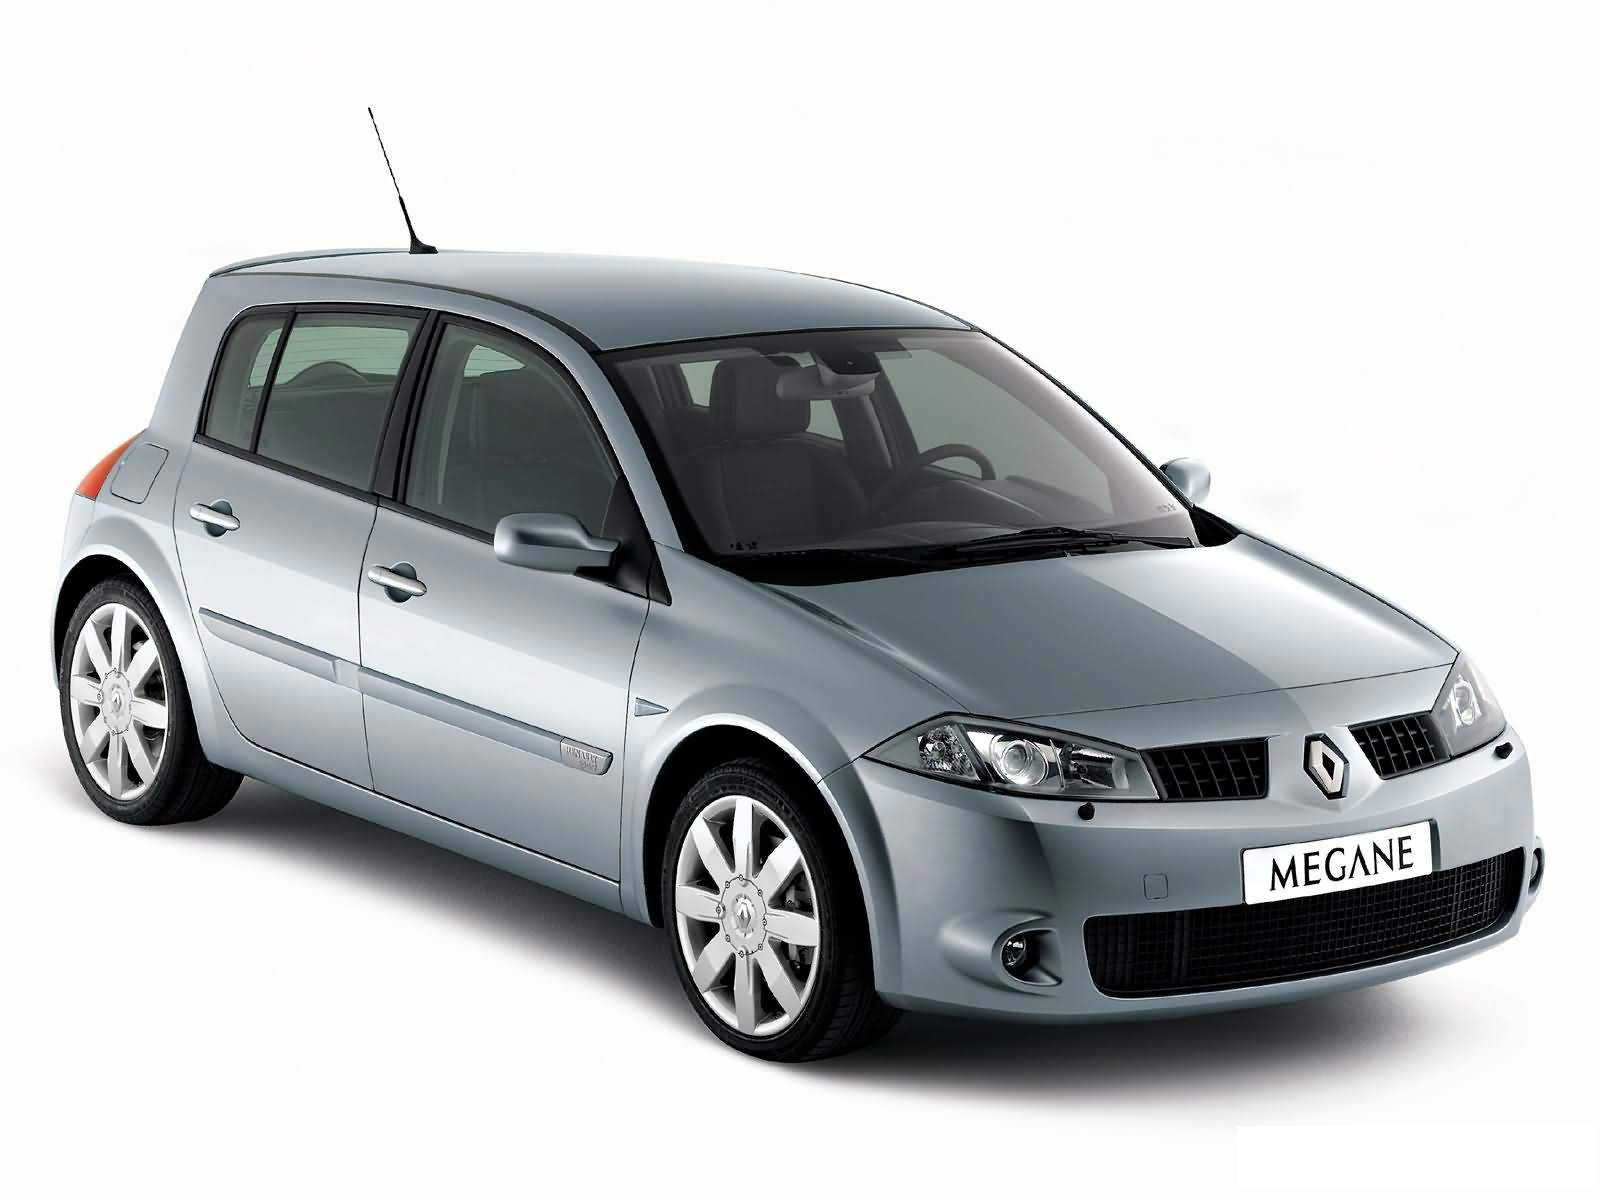 renault megane hatchback. Black Bedroom Furniture Sets. Home Design Ideas